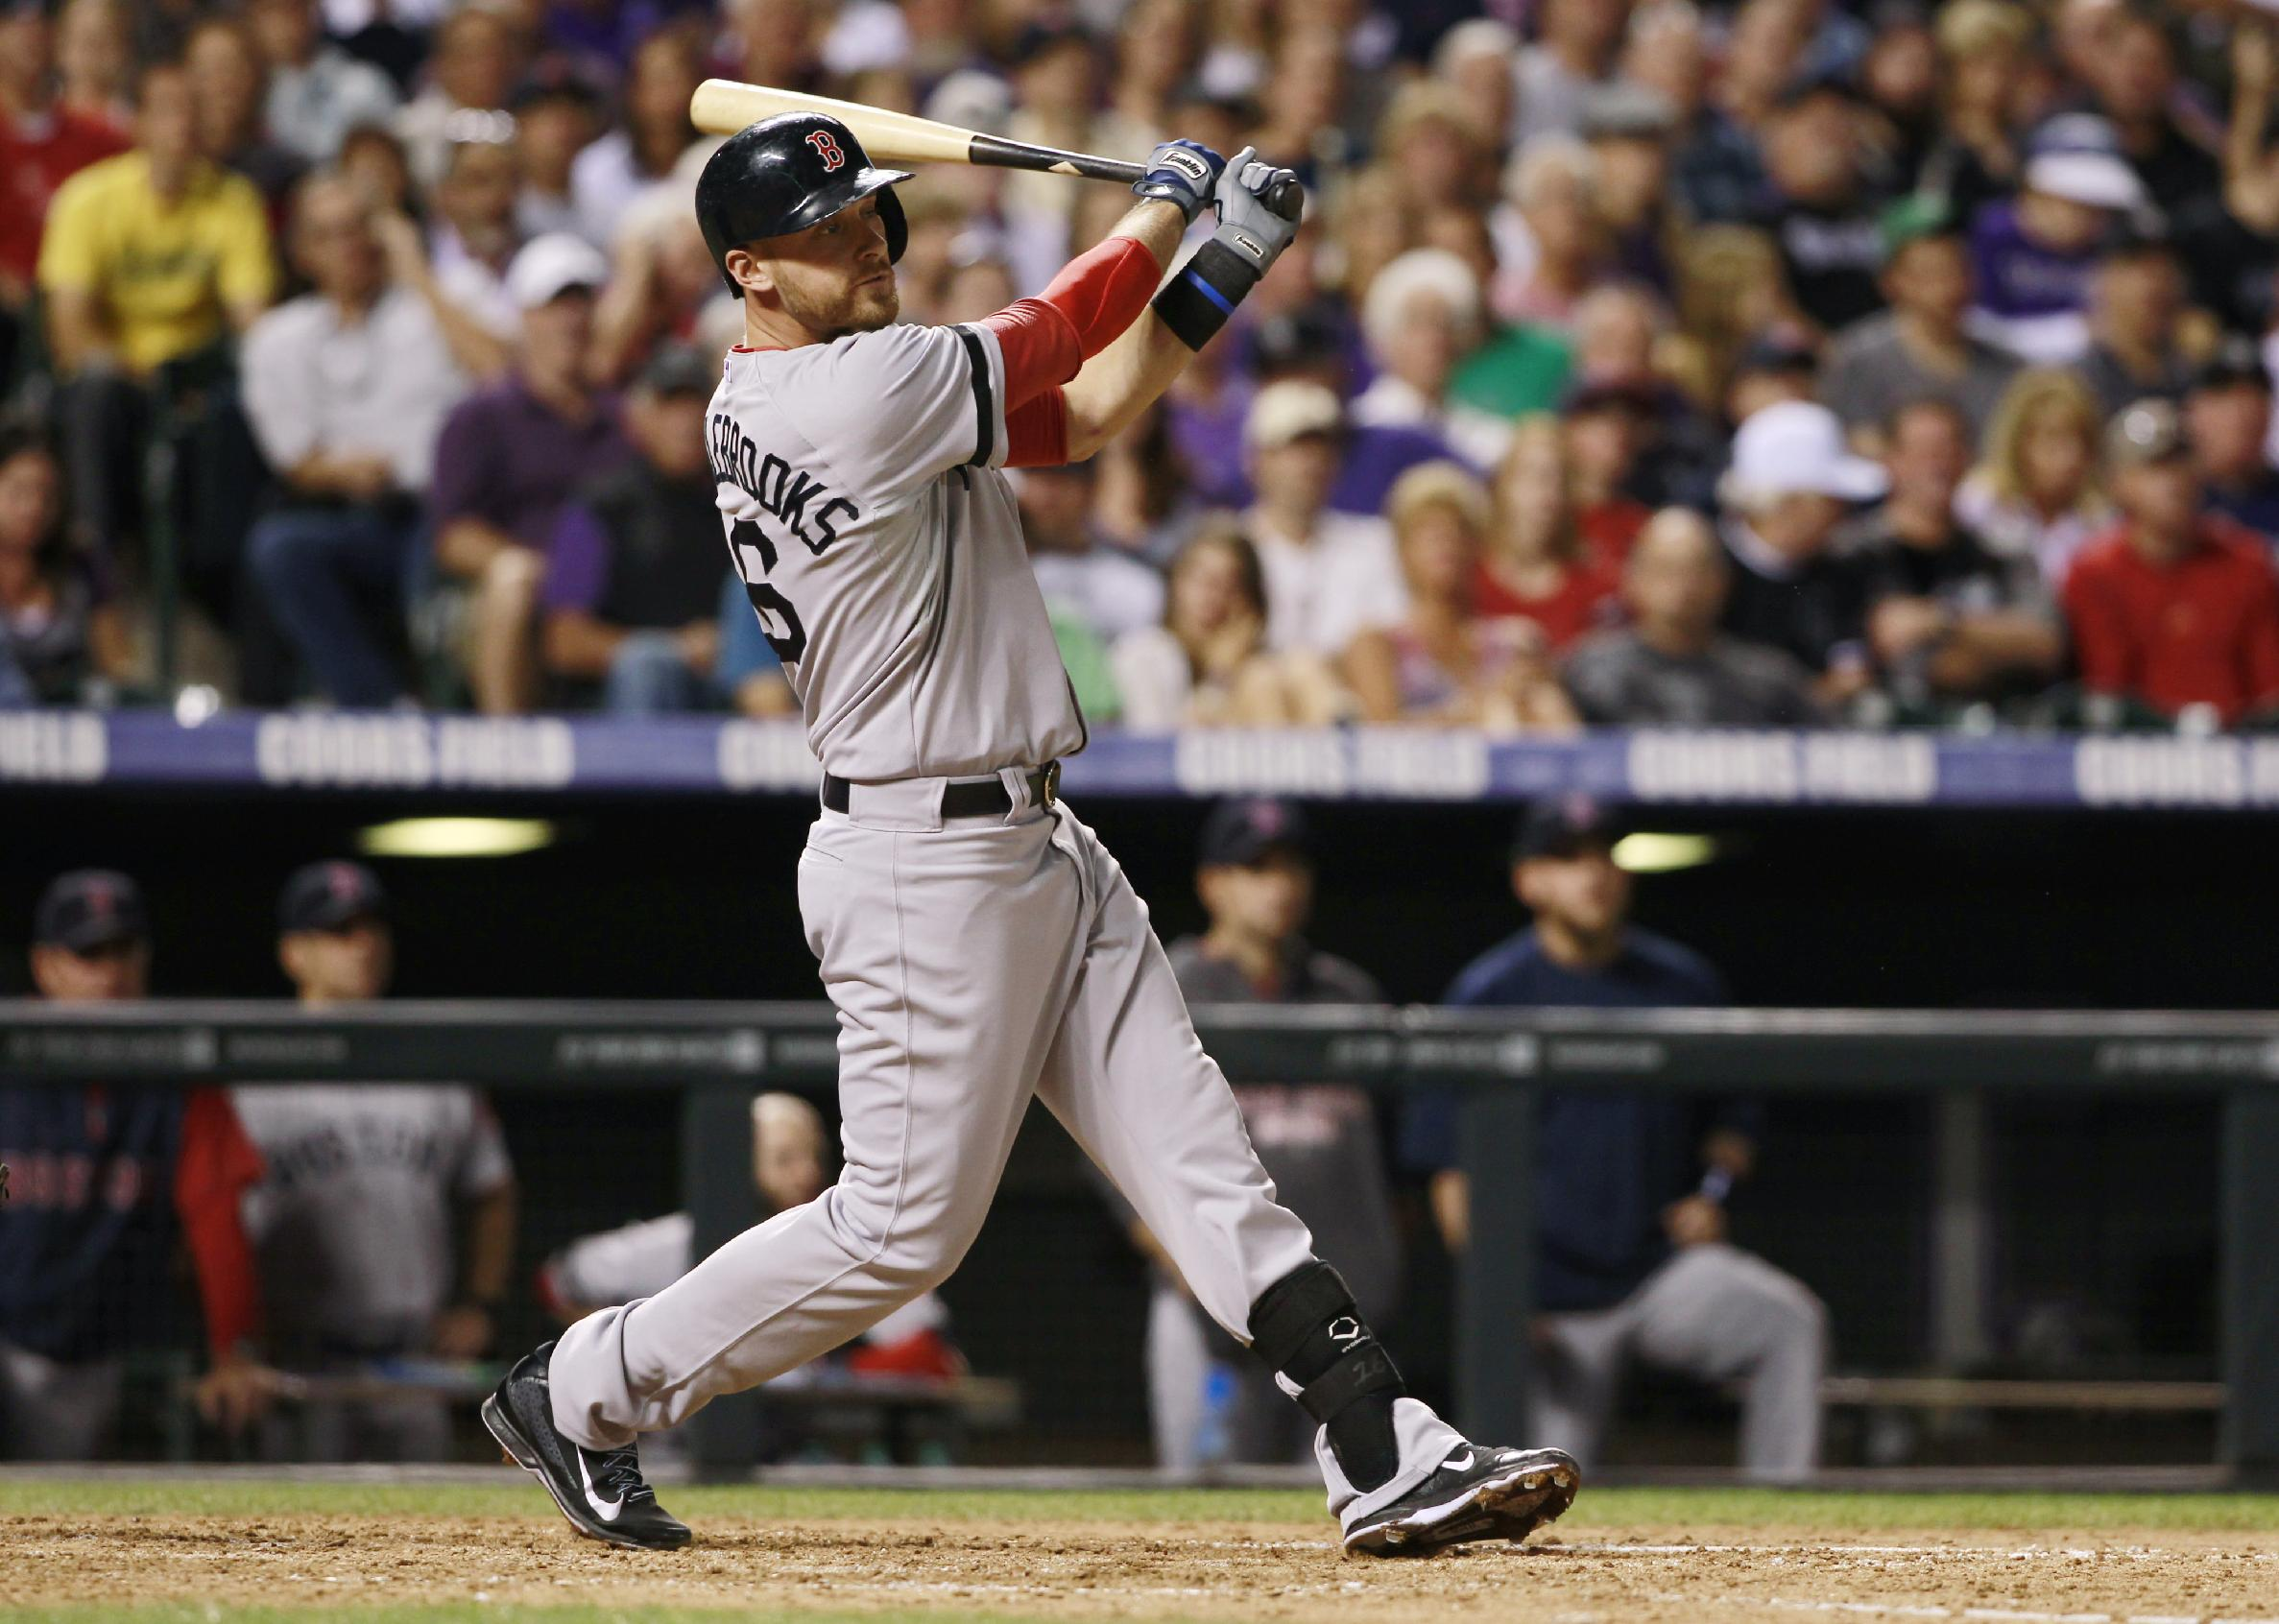 Boston Red Sox's Will Middlebrooks follows the flight of his three-run home run against the Colorado Rockies in the fifth inning of the Red Sox's 15-5 victory in a baseball game in Denver on Wednesday, Sept. 25, 2013